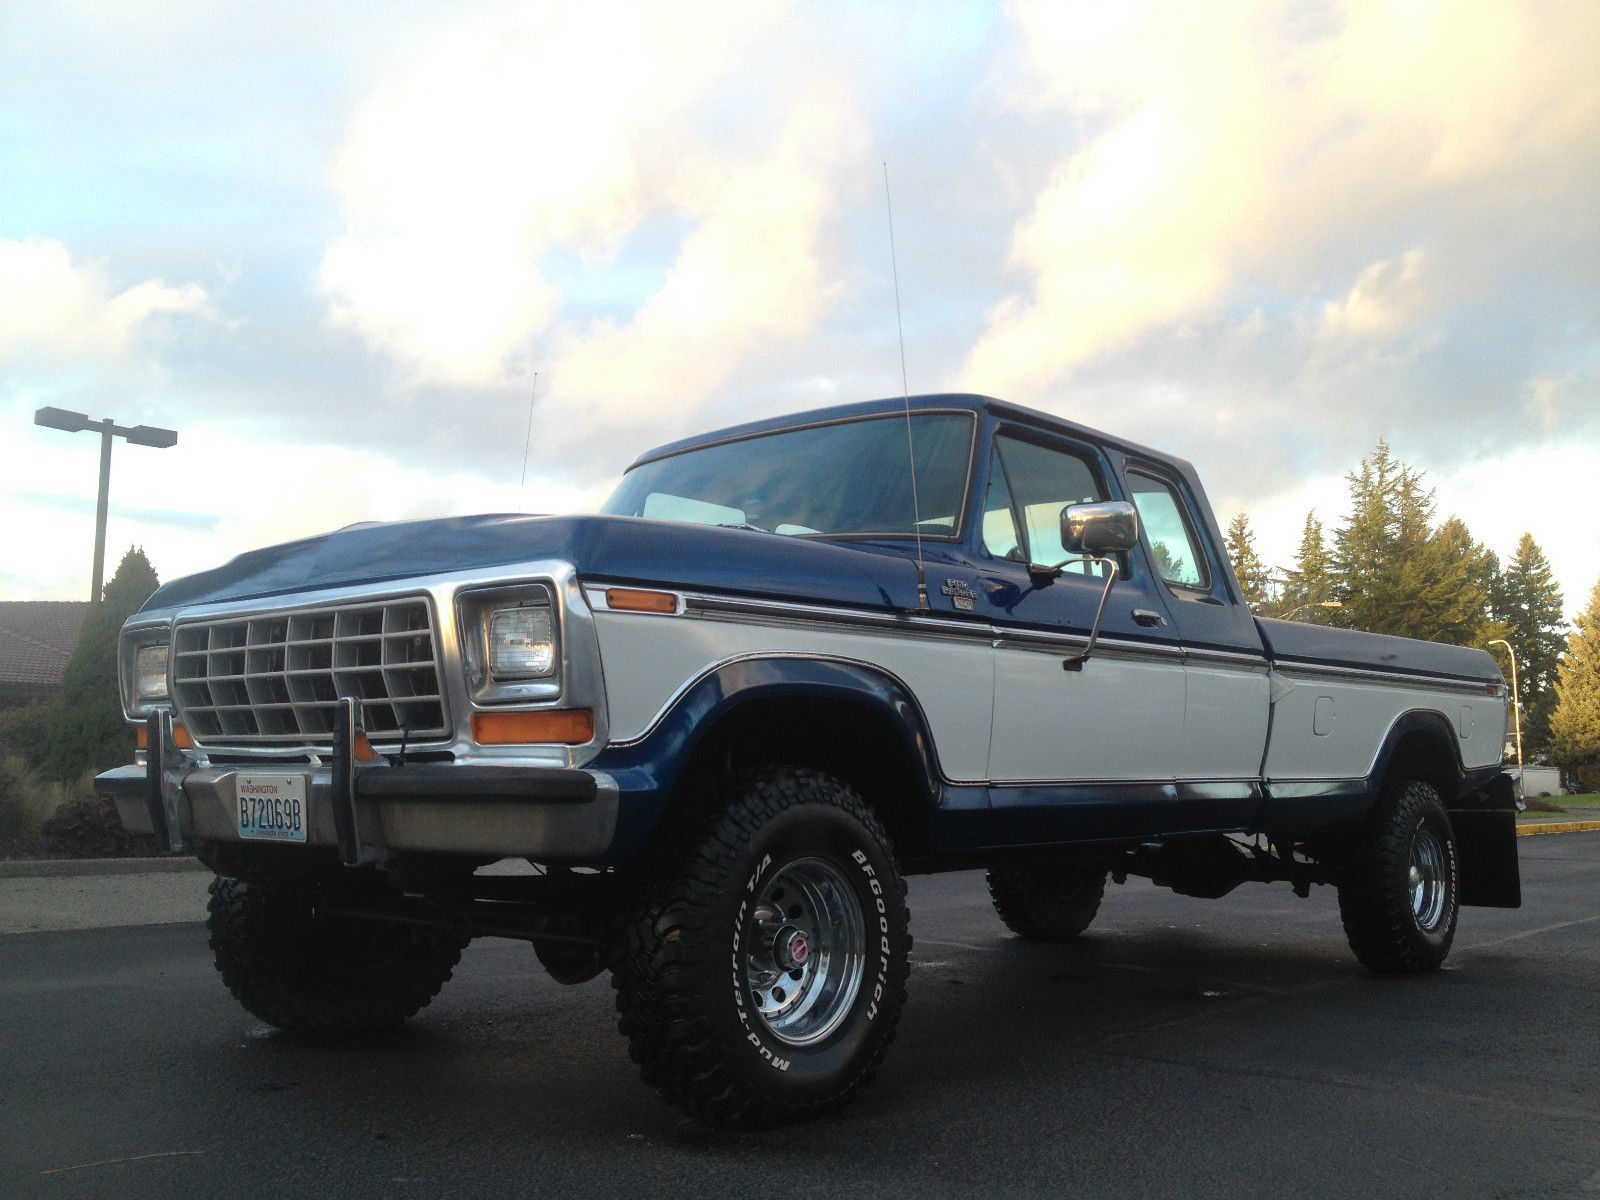 1978 ford f 150 ranger xlt lariat supercab 4x4 for sale in kirkland washington united states. Black Bedroom Furniture Sets. Home Design Ideas